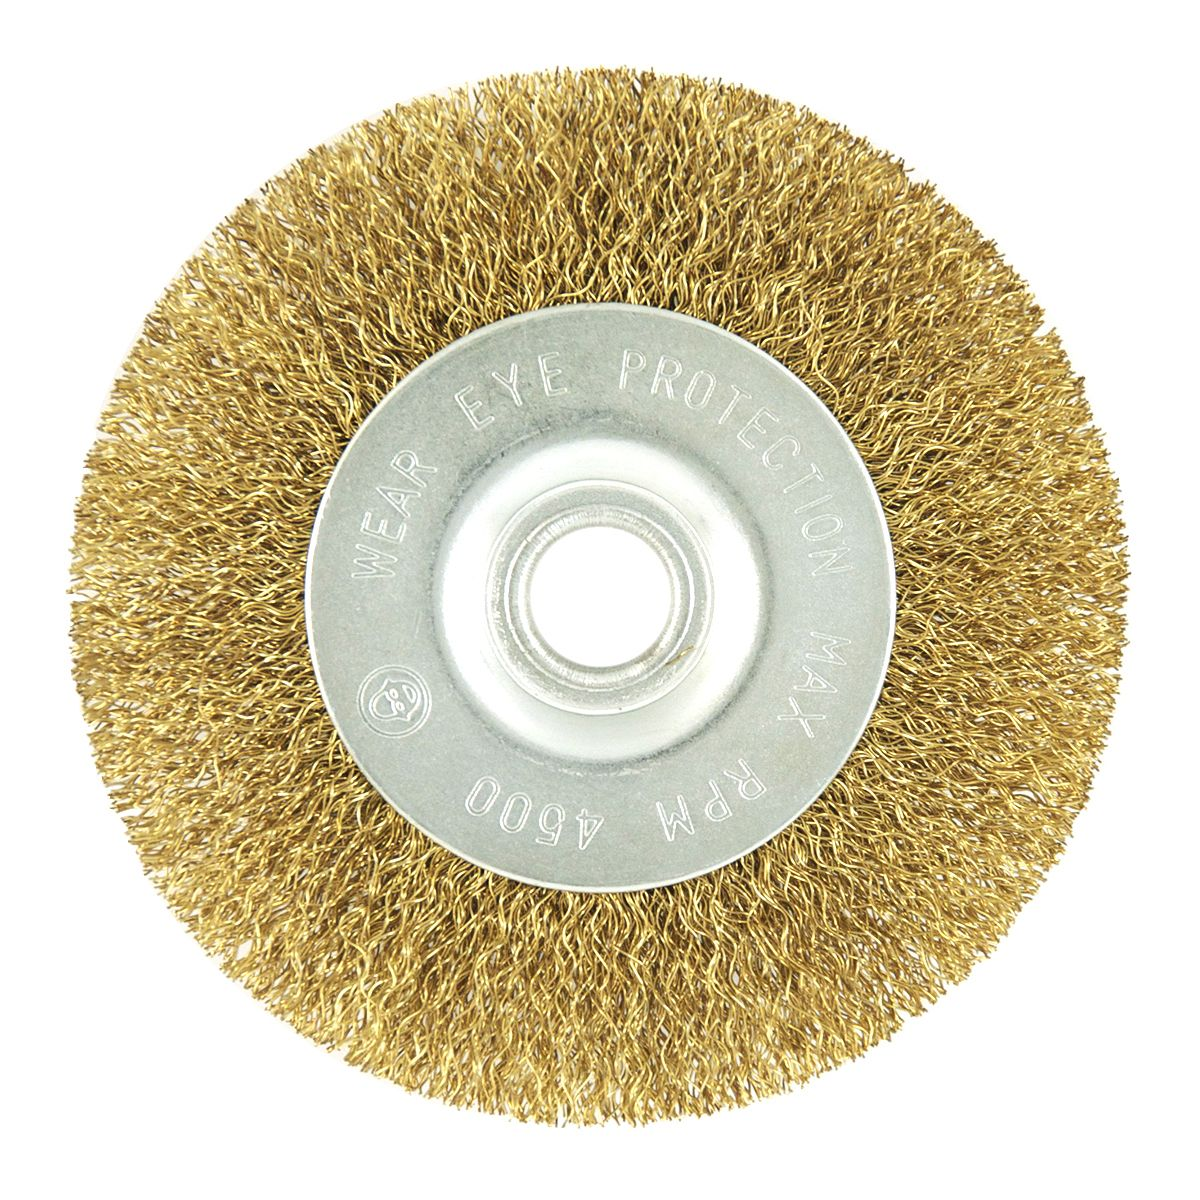 EAB Tool 2160400 2 1//2 Brass Coarse Wire Wheel Wire Brush Recyclable,